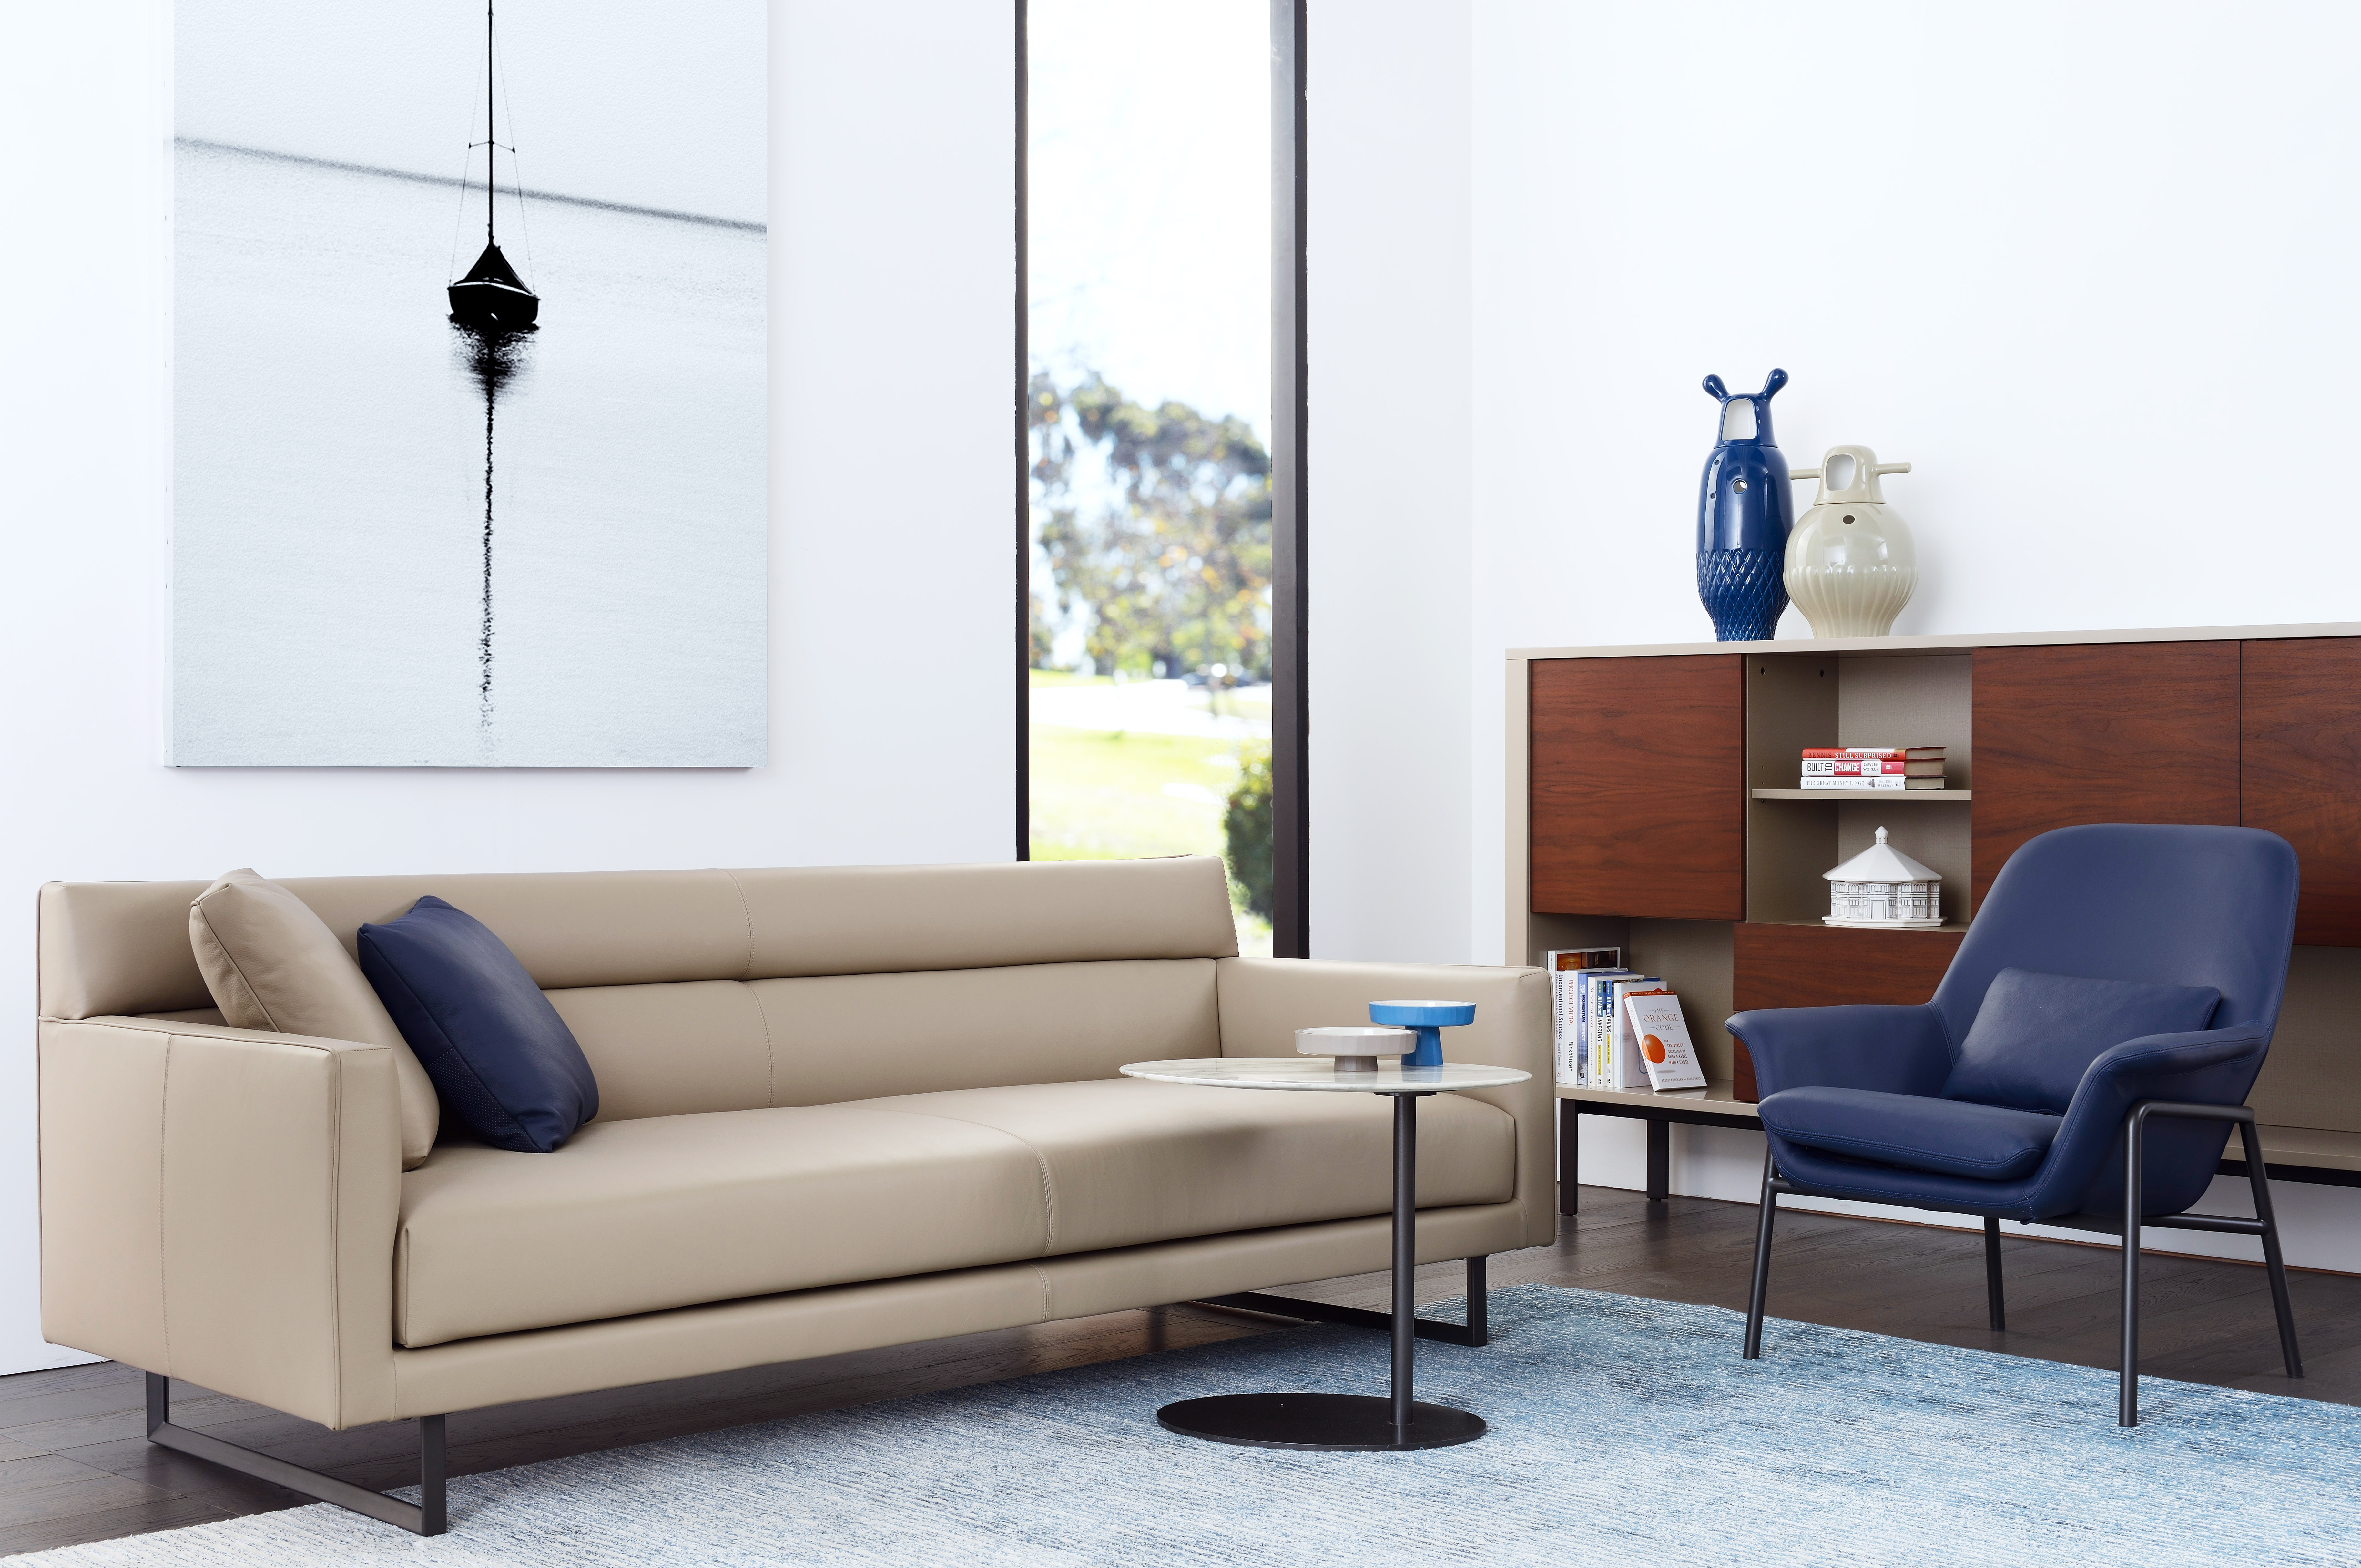 Armor Sofa From Camerich